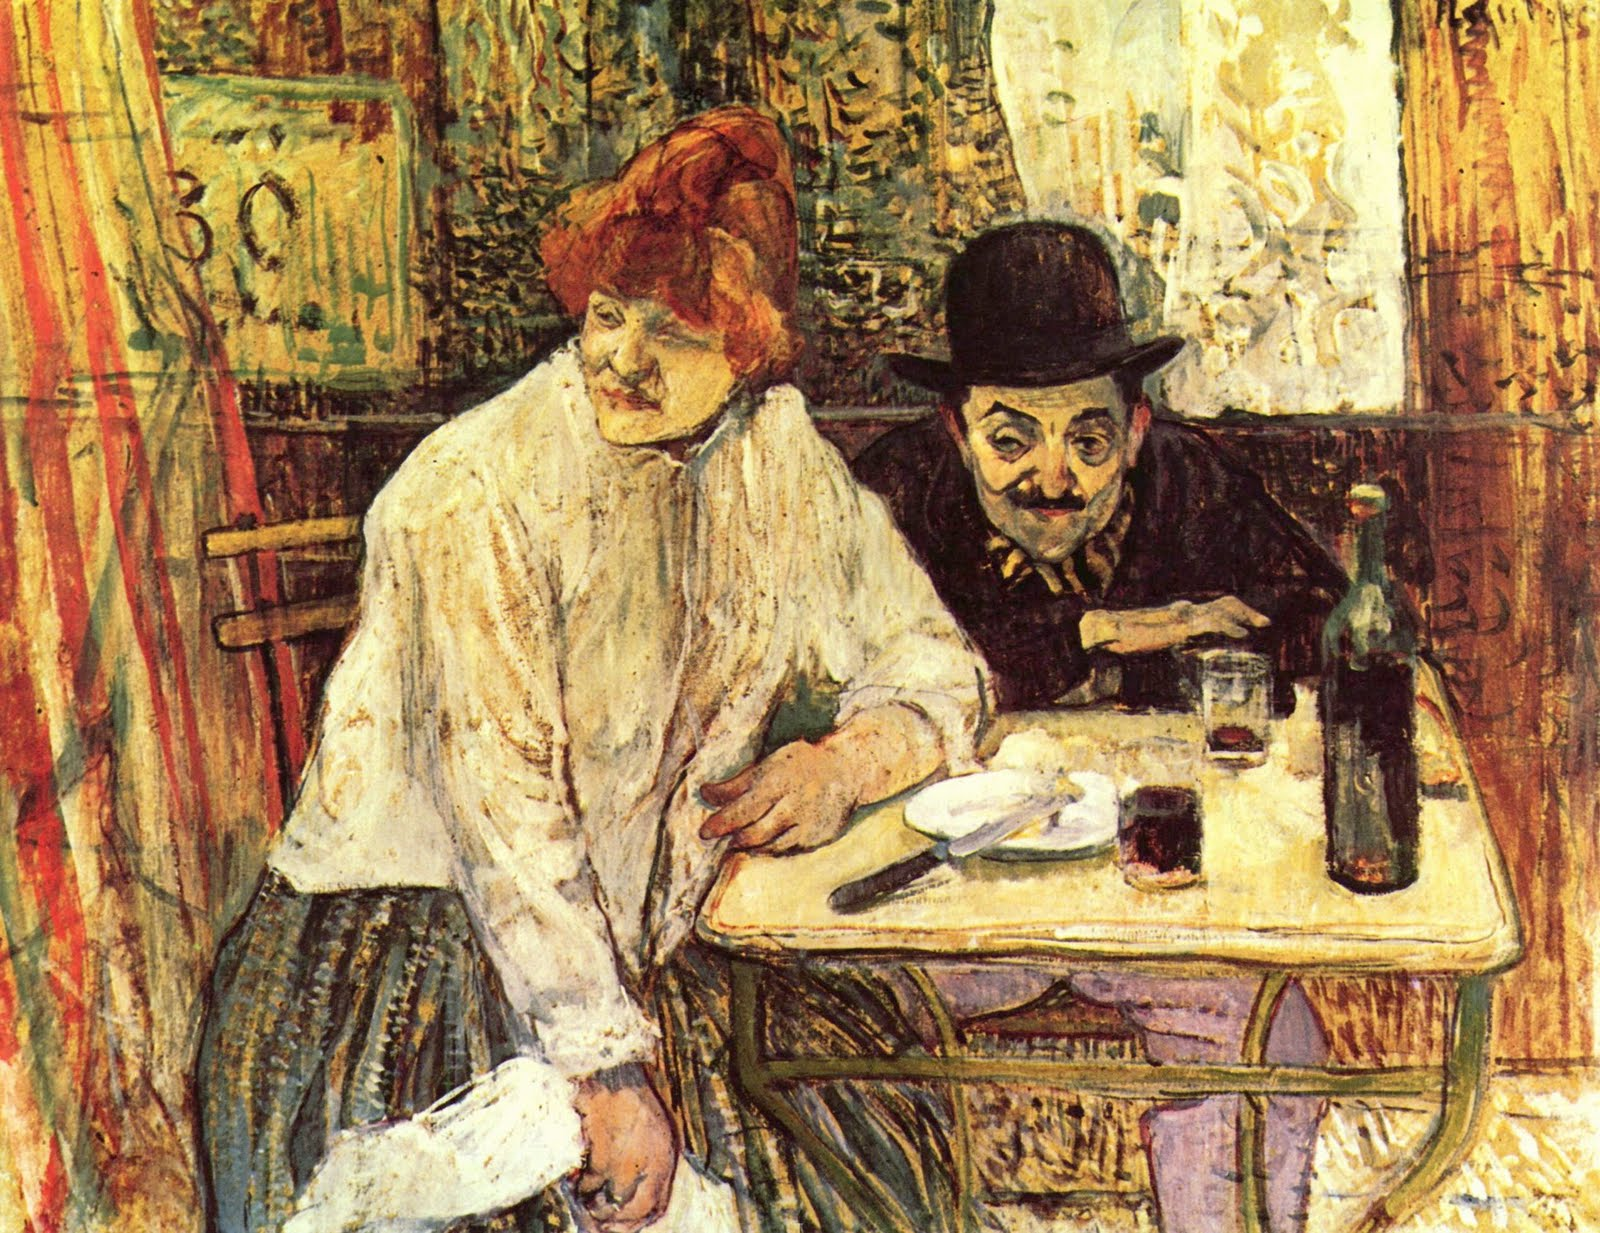 Henri de Toulouse-Lautrec 1864–1901 | Les Nabis - Post-Impressionist Painting Group